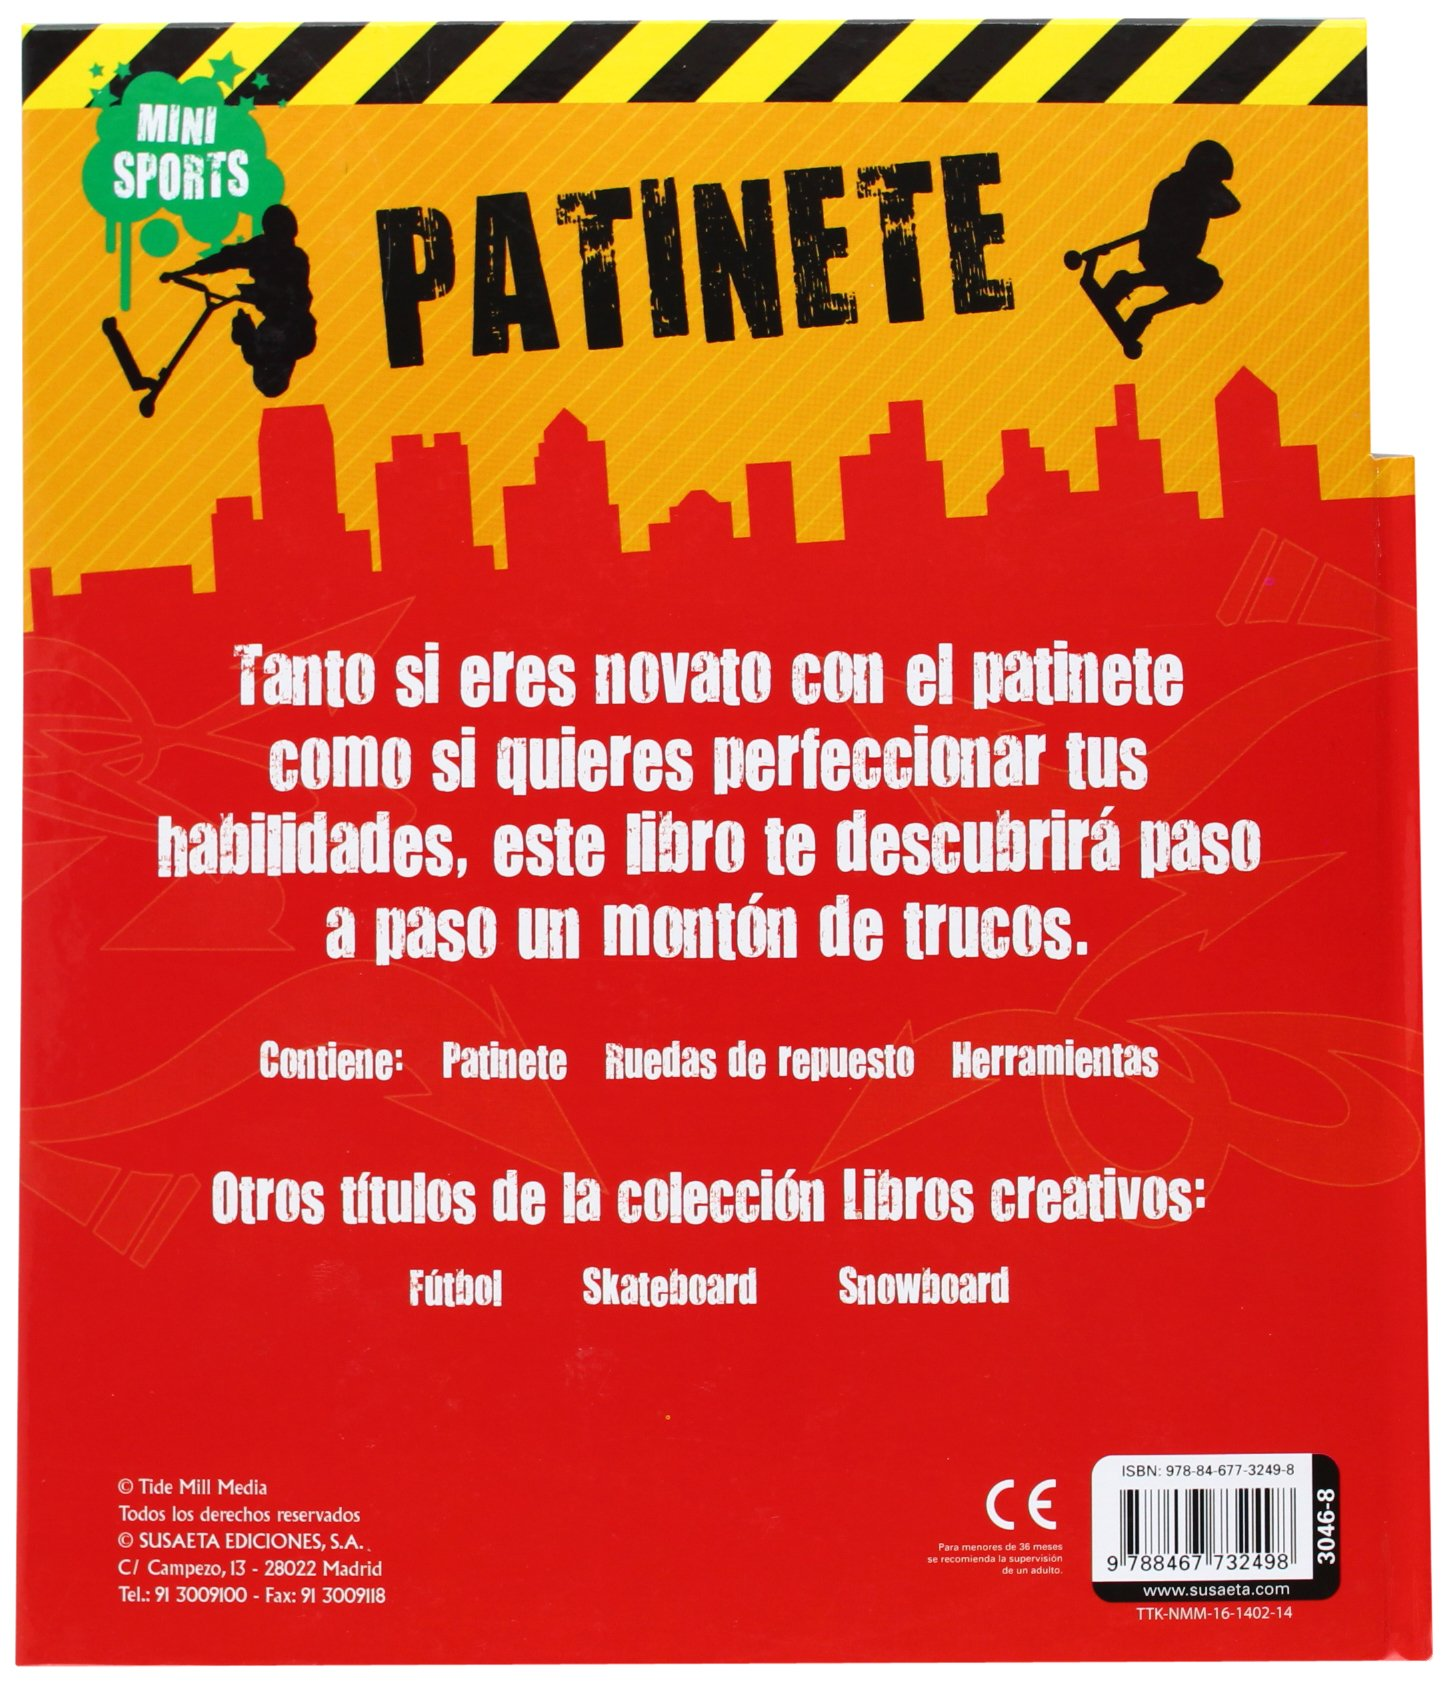 Patinete: 9788467732498: Amazon.com: Books